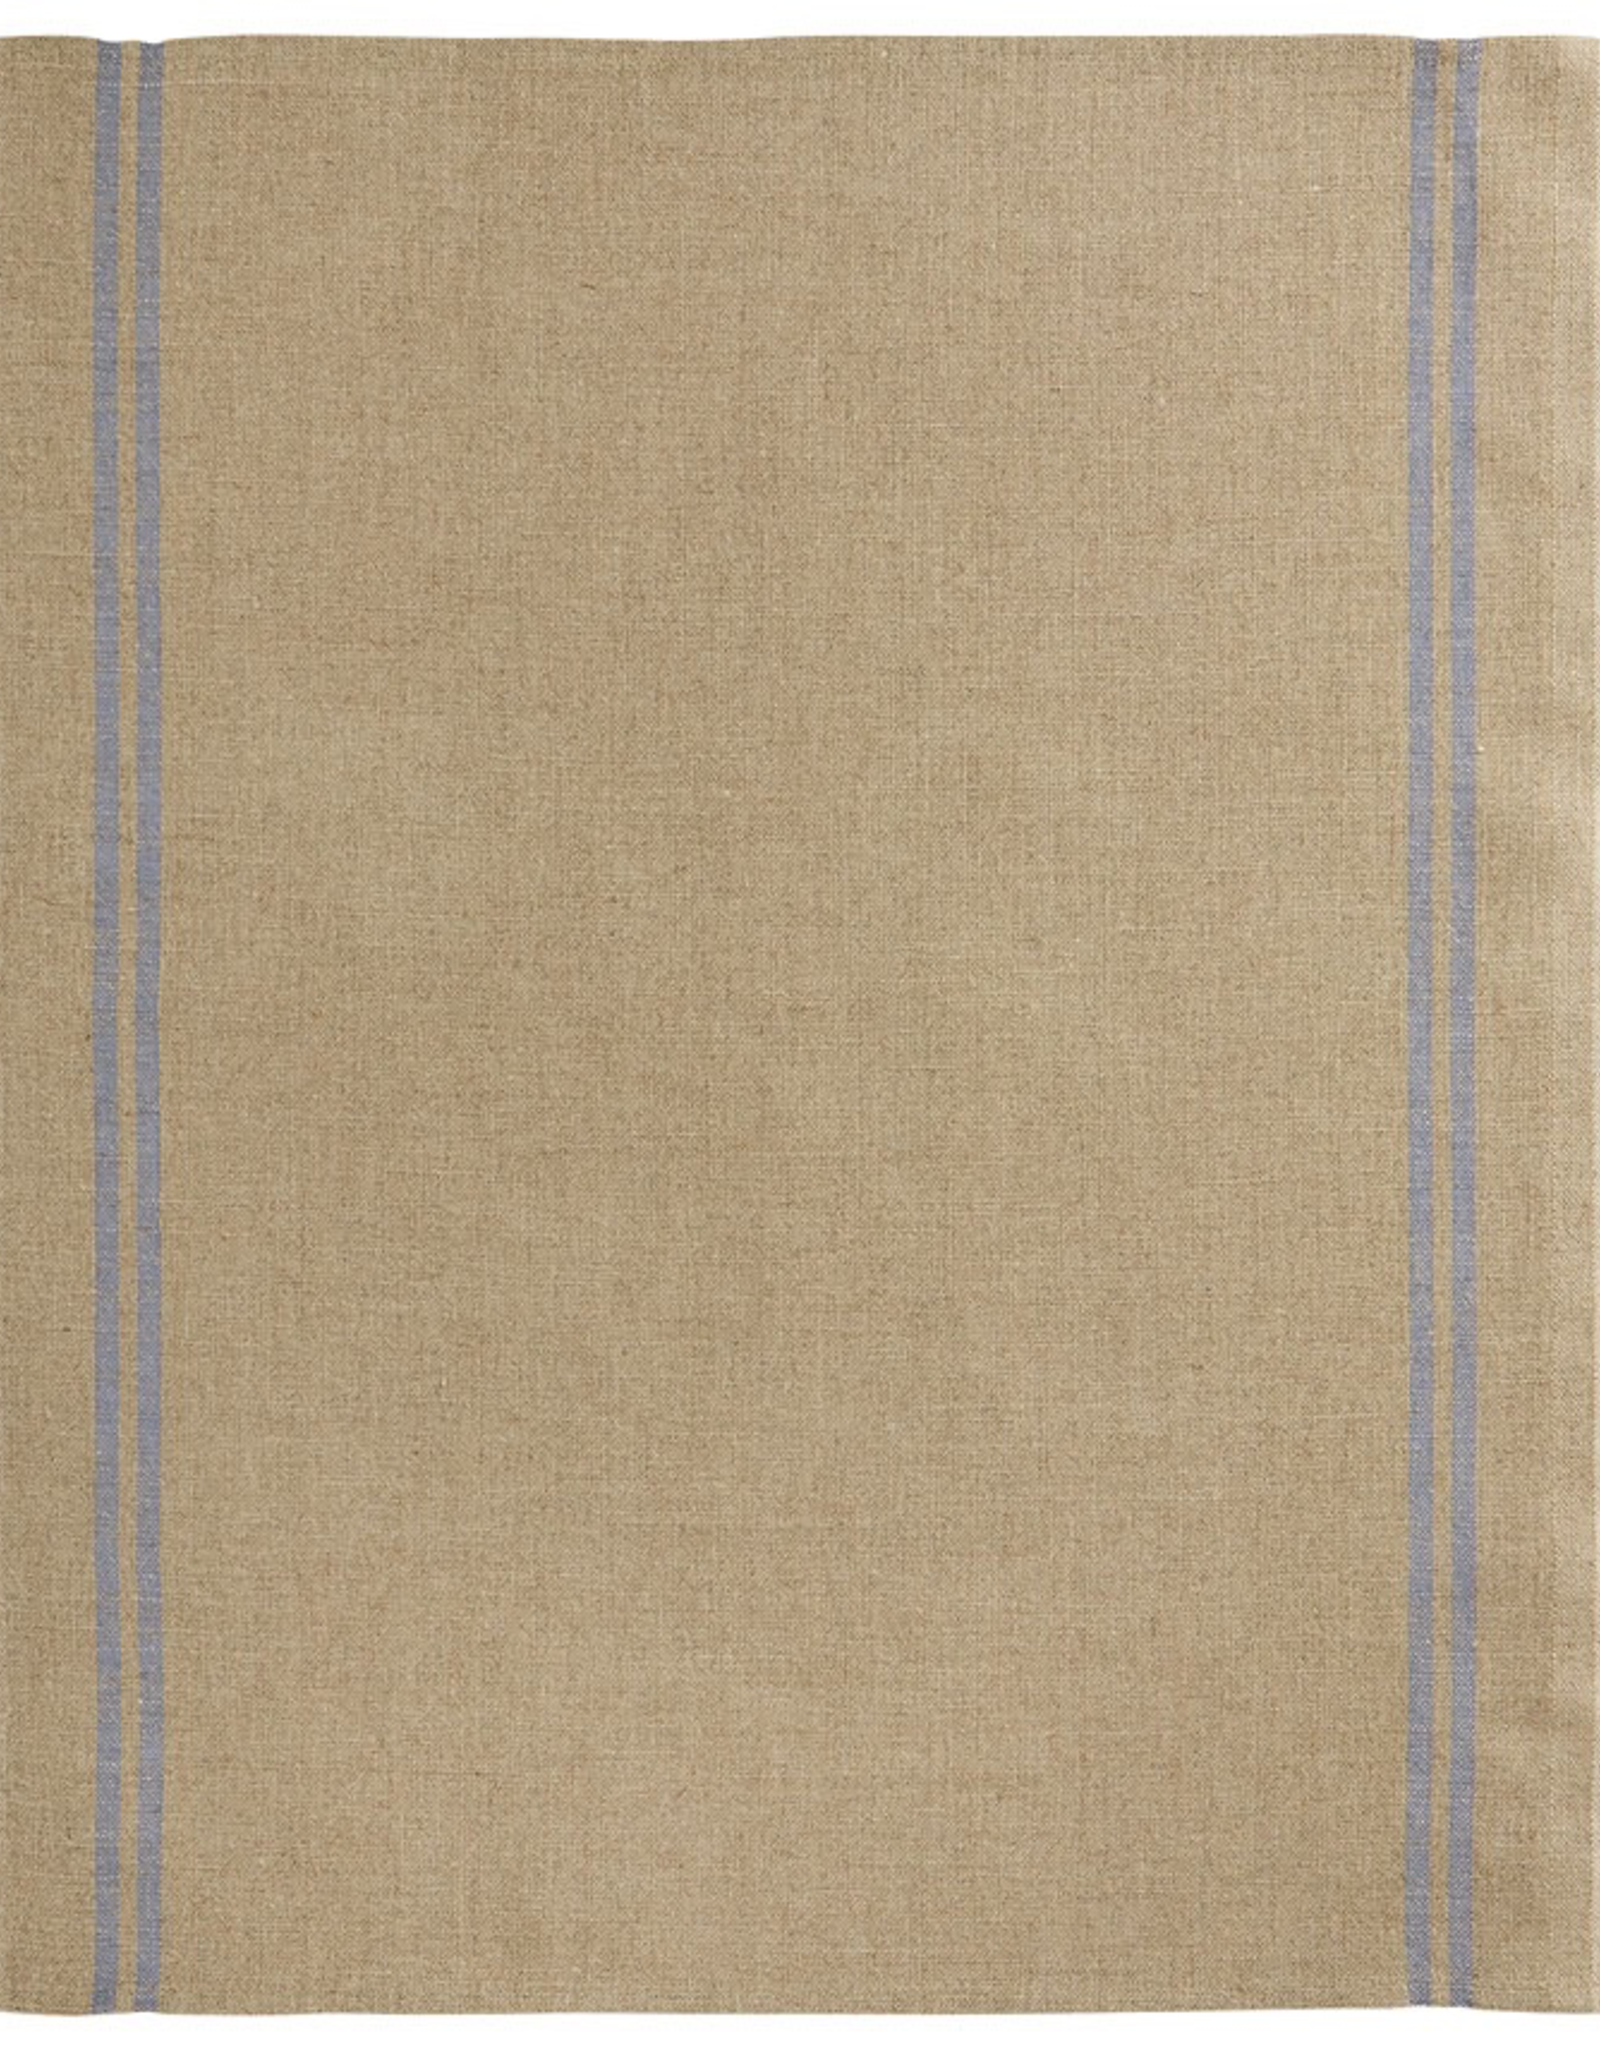 Tea Towel, Linen, Country Blue, Natural with Blue Stripe